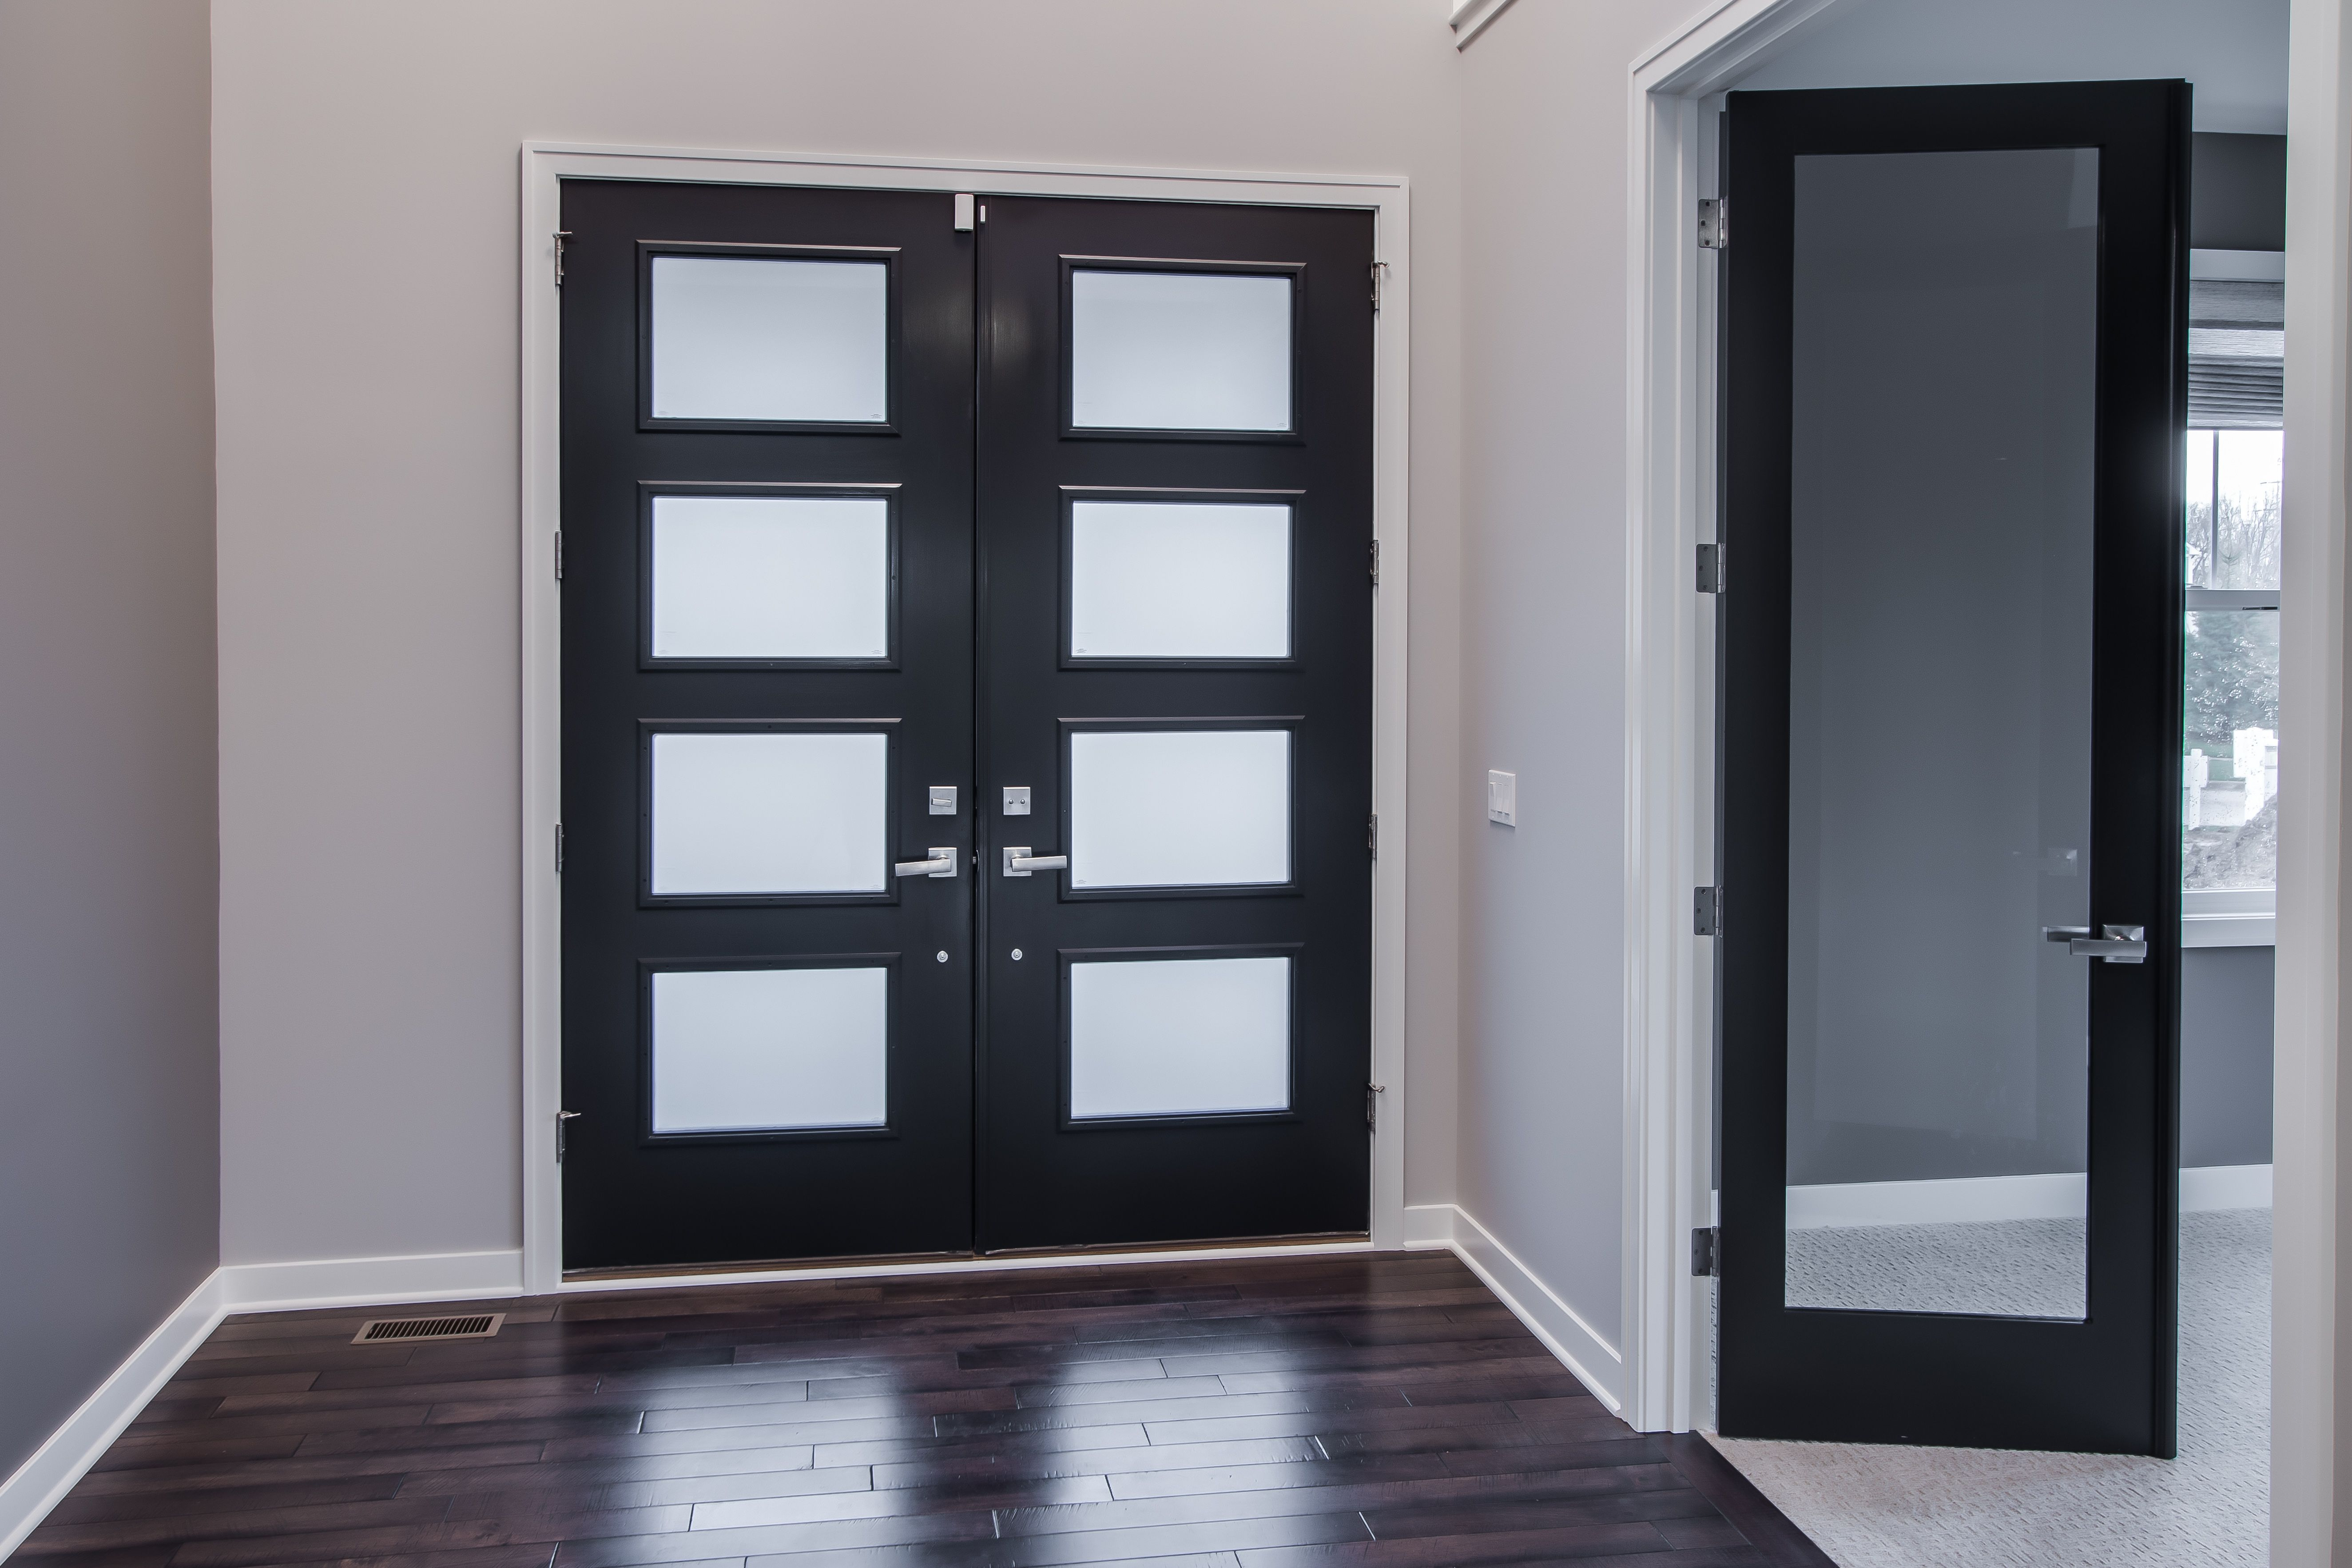 Foyer/Entry: Pecan Hardwood Floors, Black French Door Frames With  Translucent Window Panels